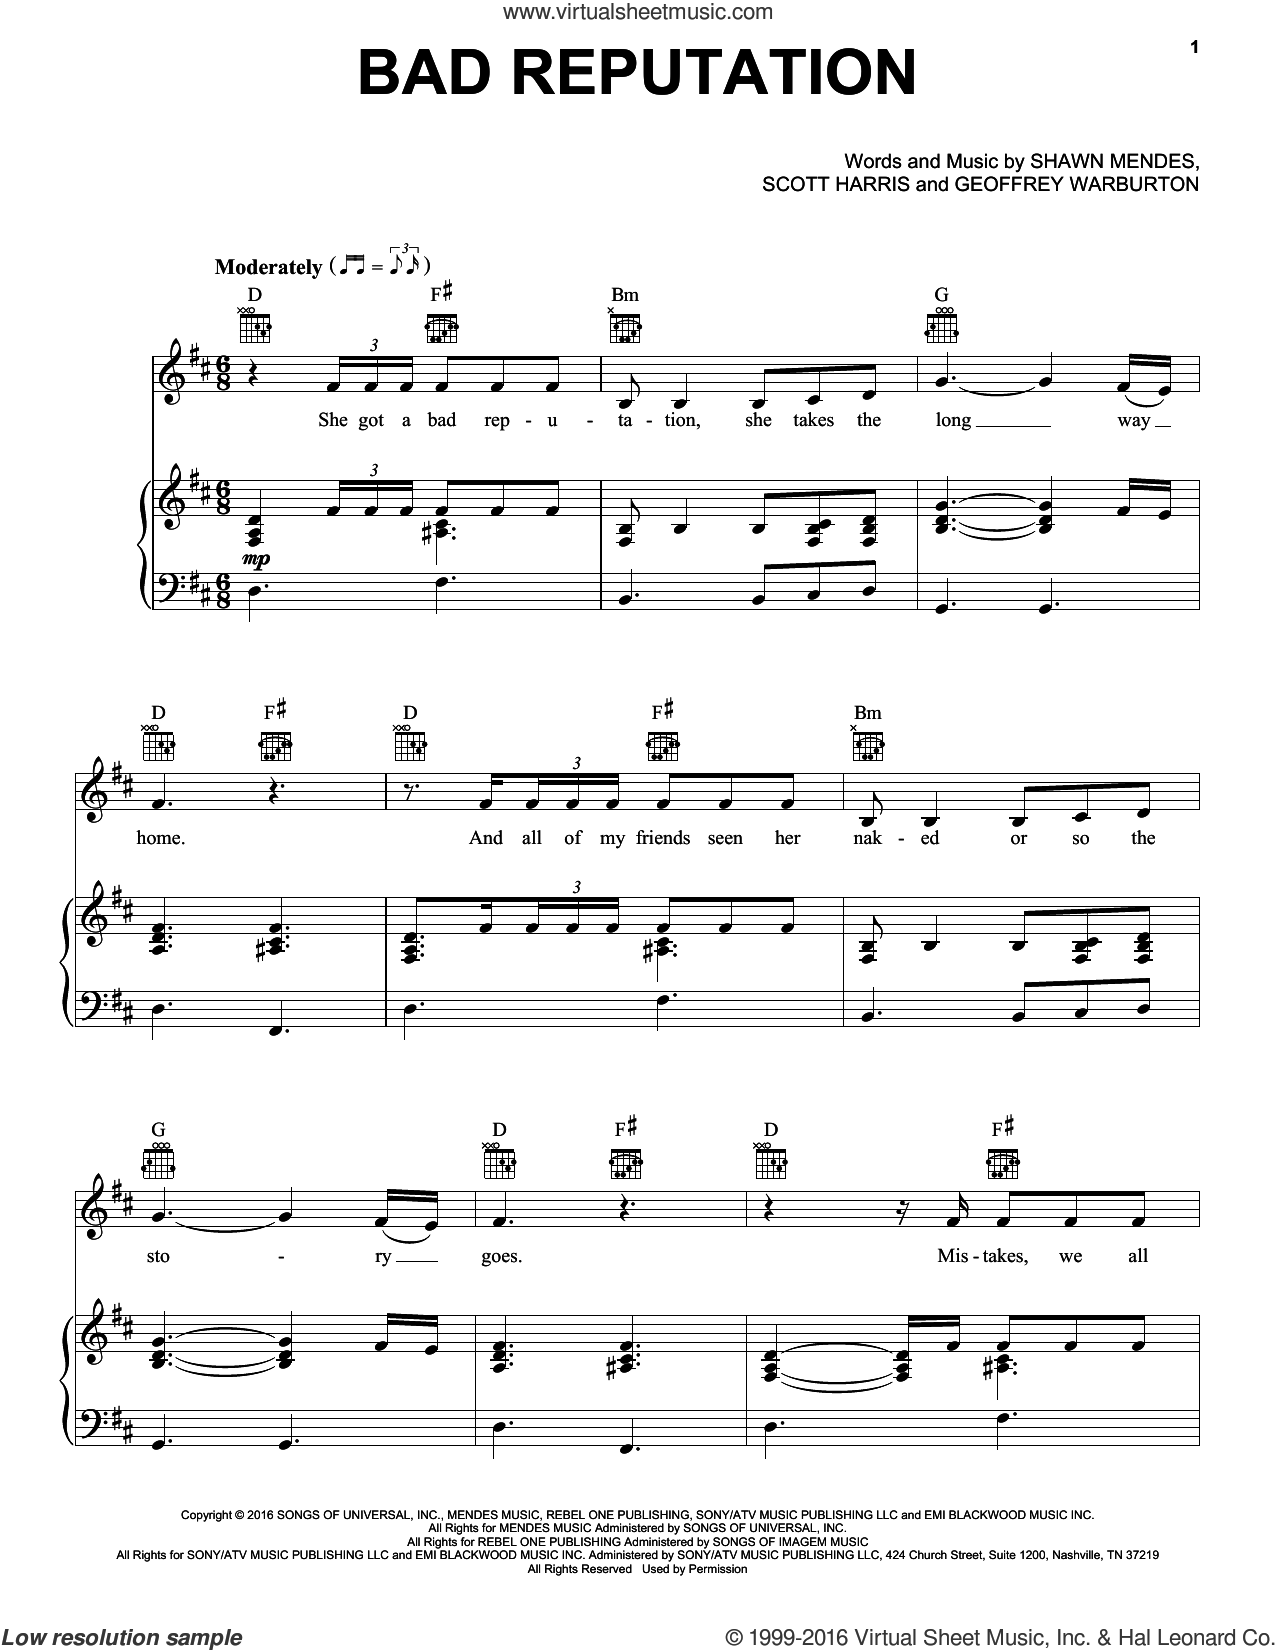 Bad Reputation sheet music for voice, piano or guitar by Shawn Mendes. Score Image Preview.